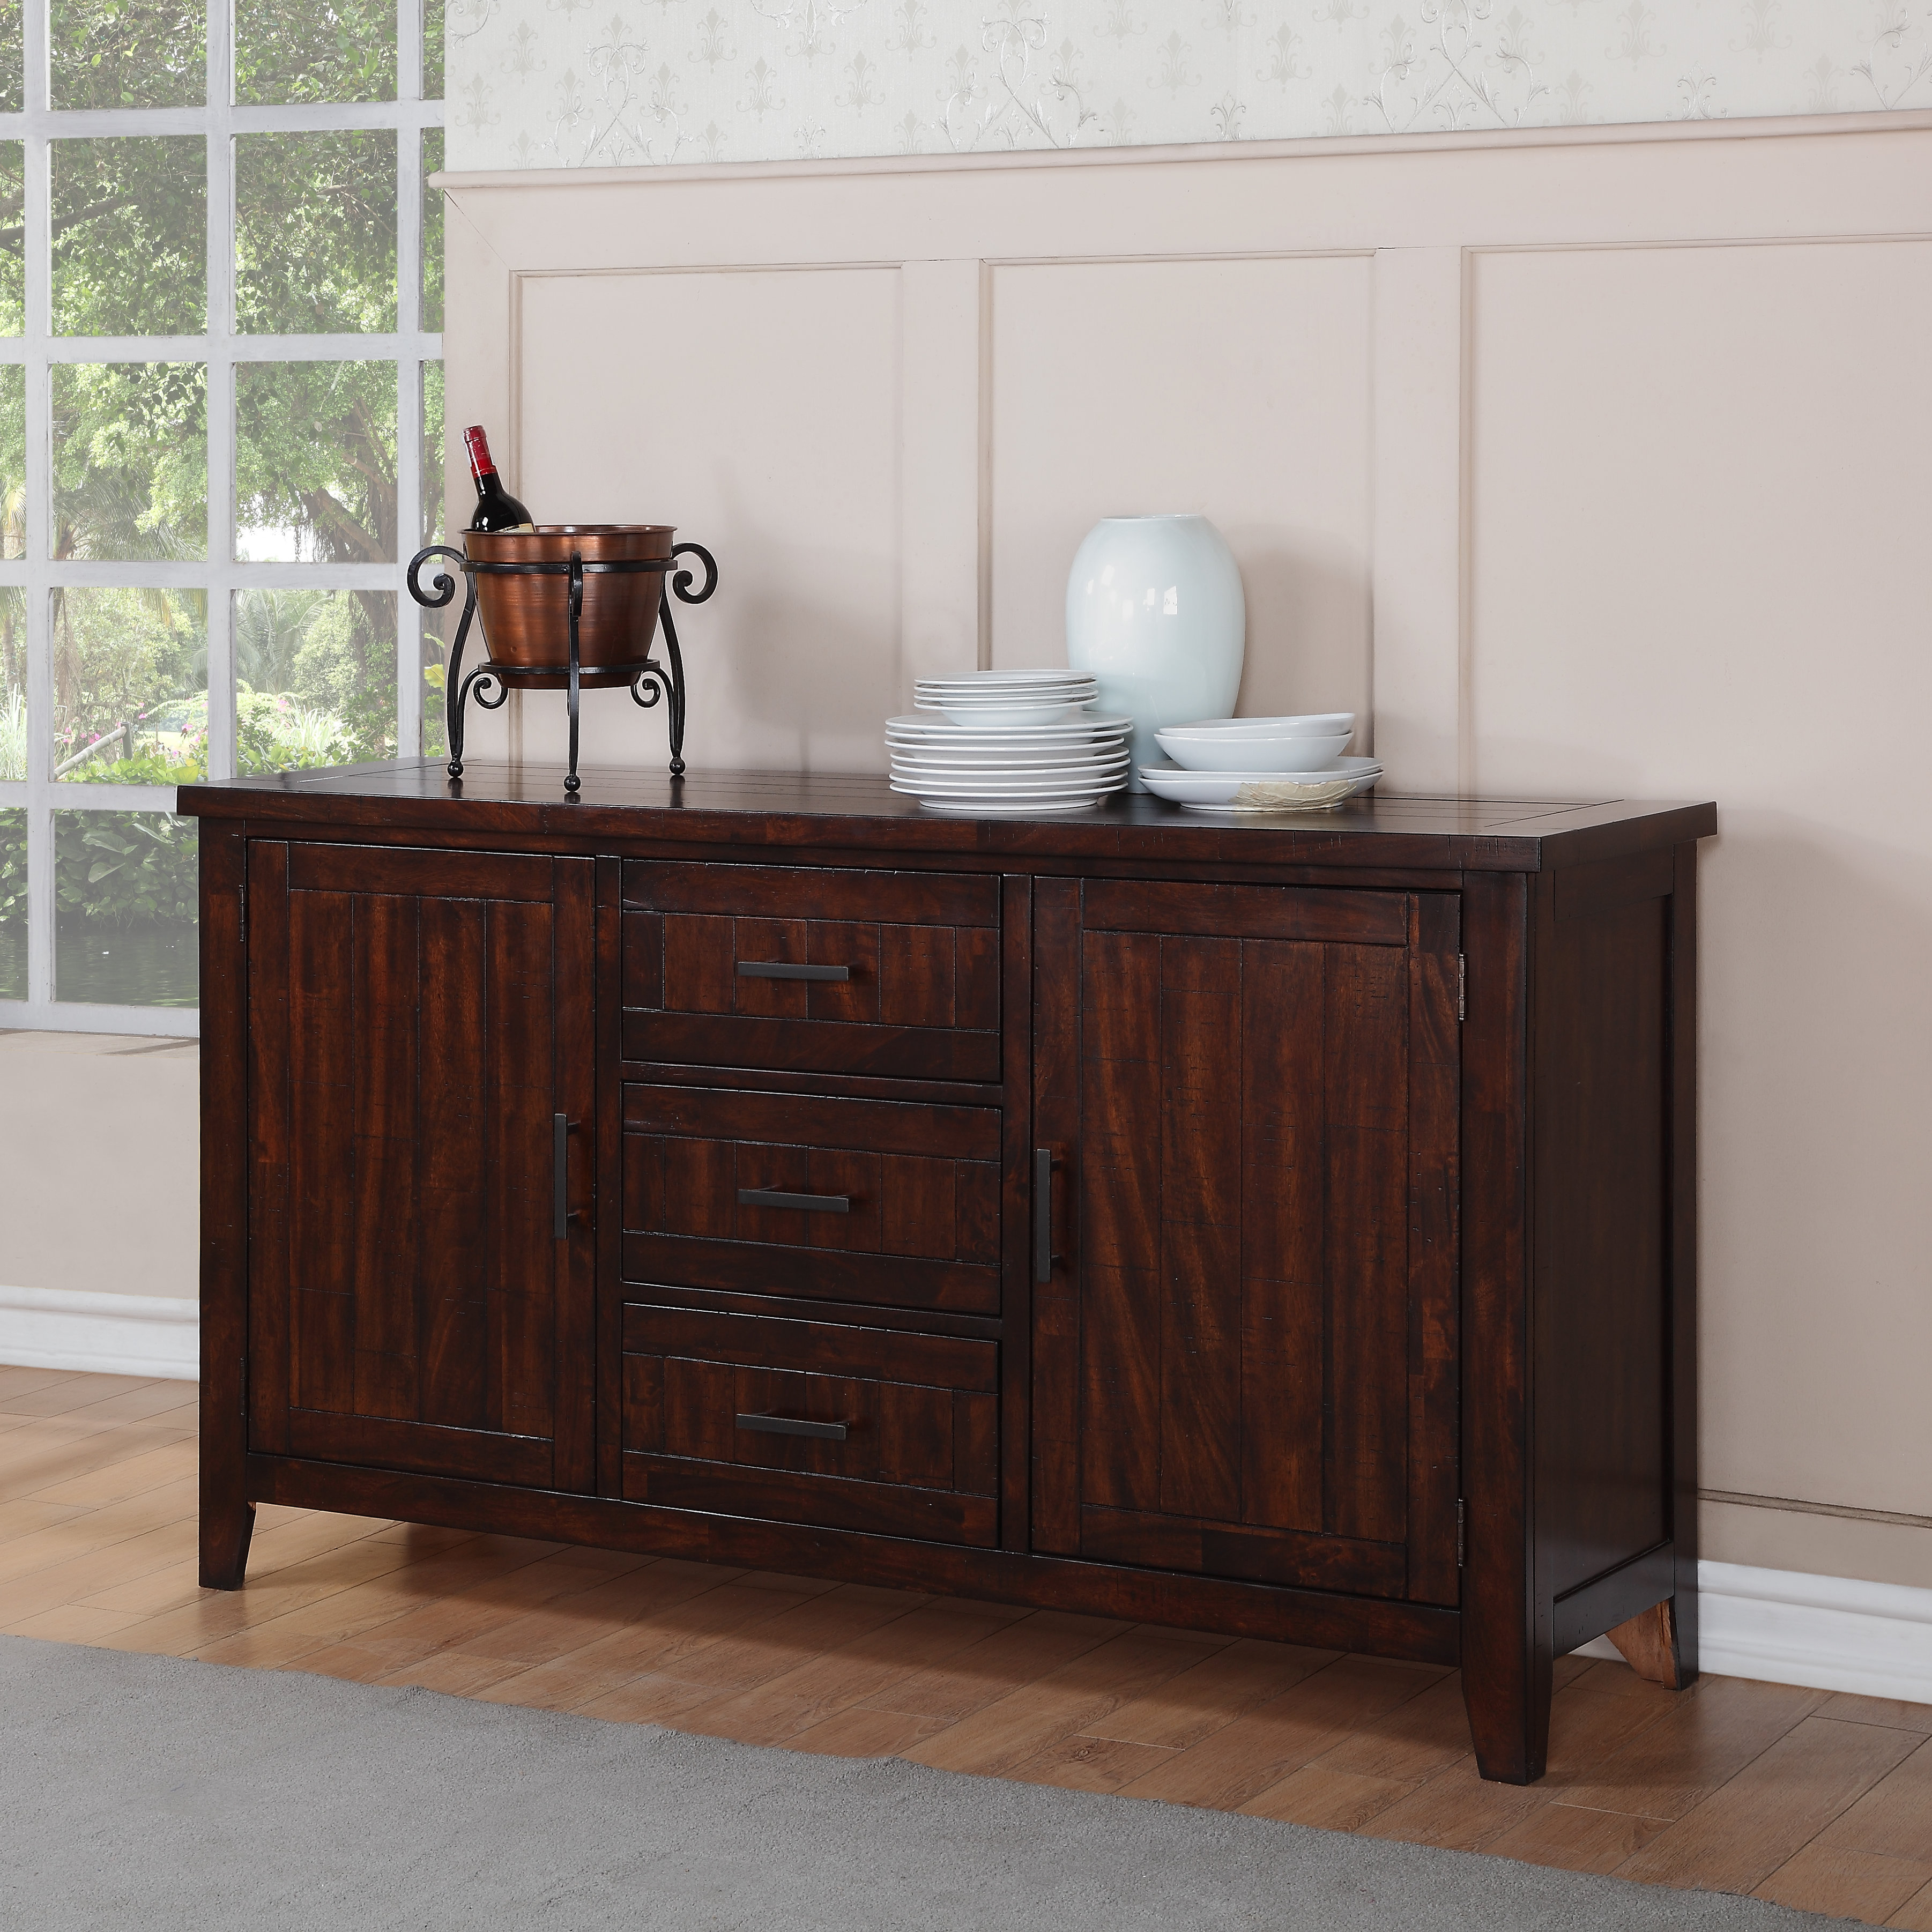 Popular Photo of Seiling Sideboards